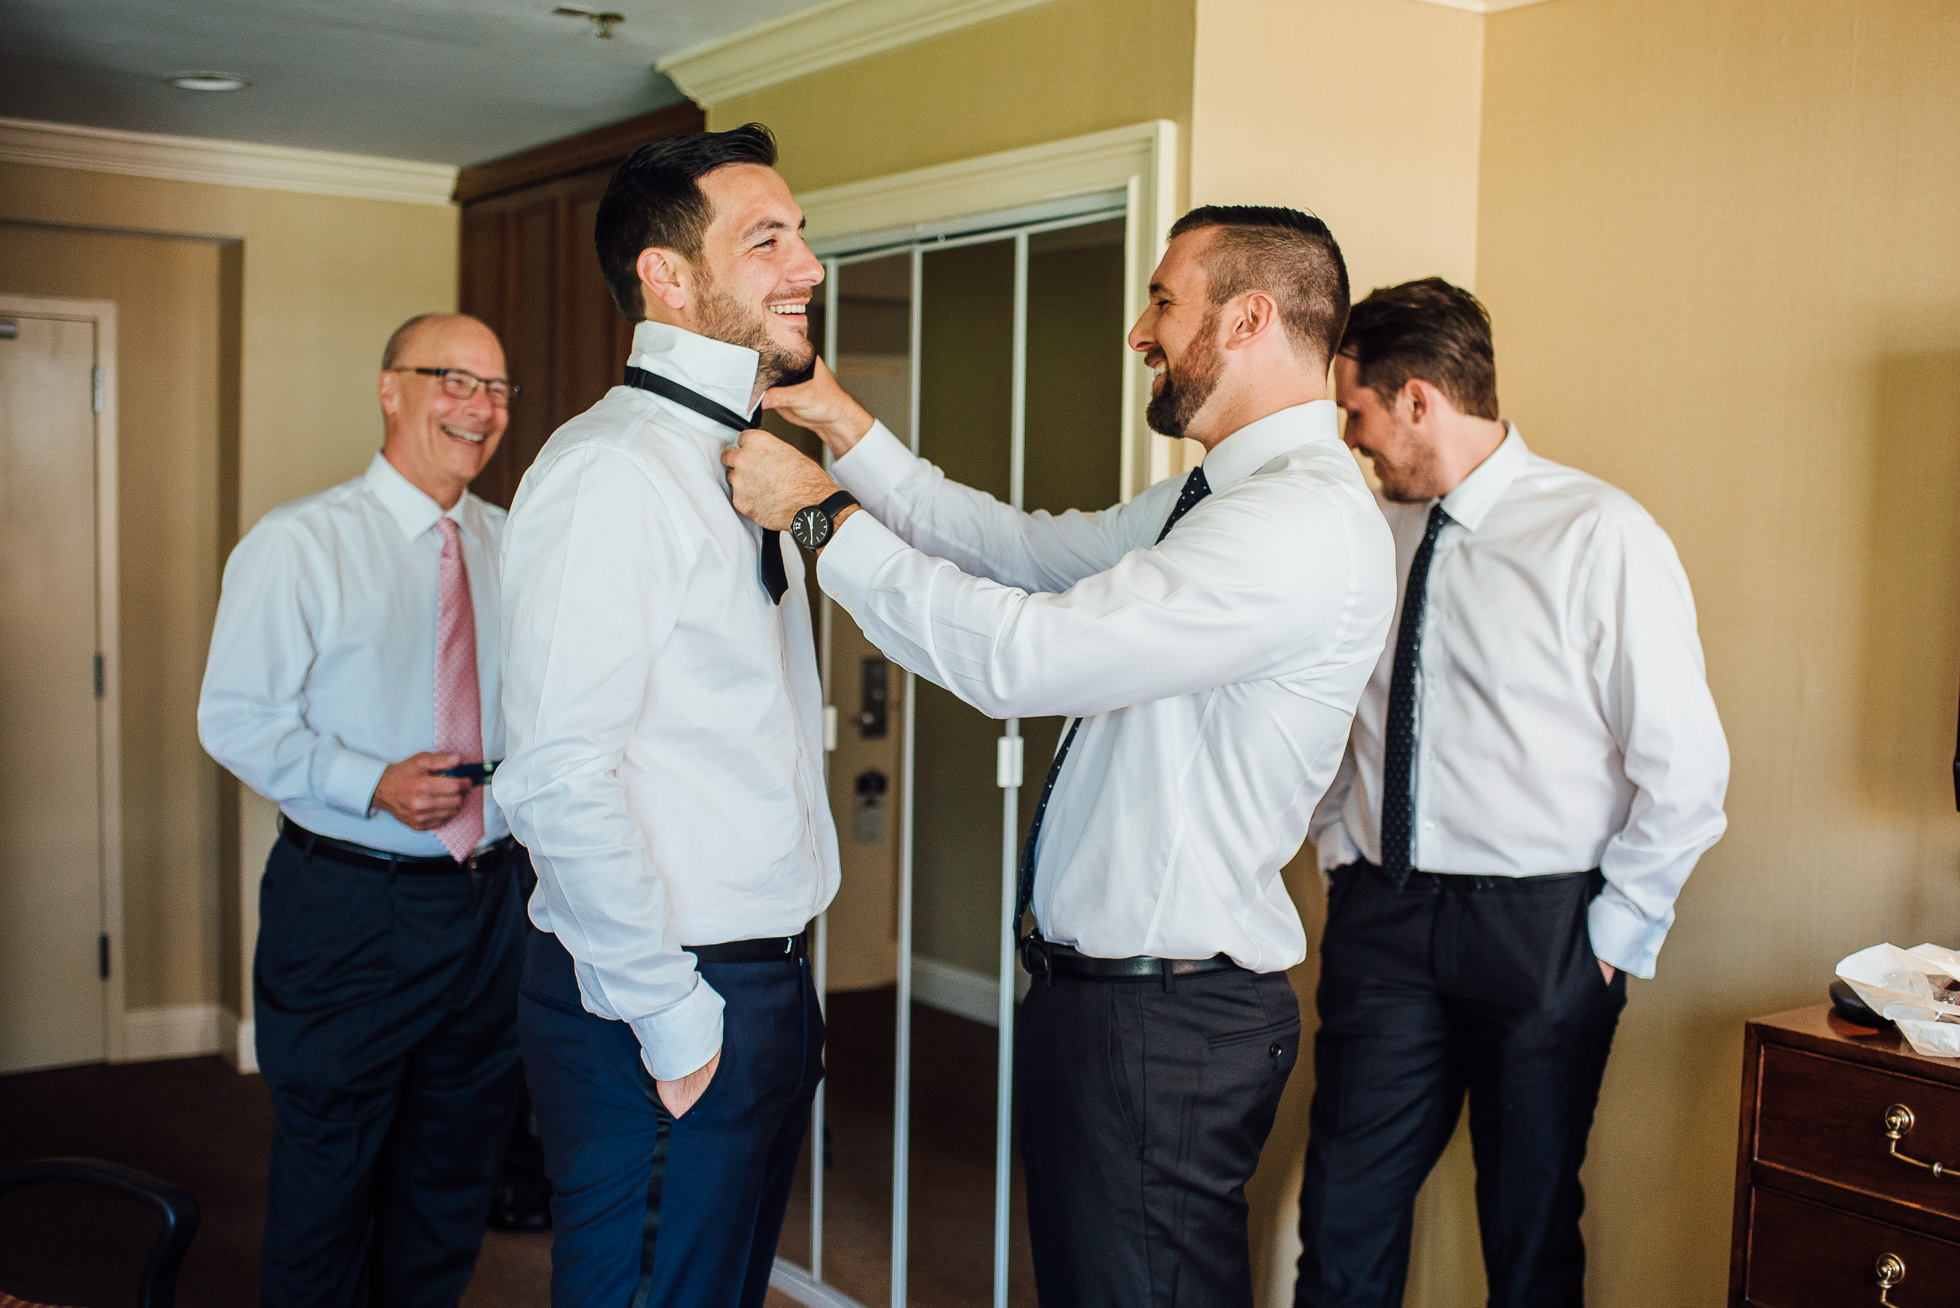 groom getting ready with groomsmen lyndhurst castle wedding photographed by traverse the tides